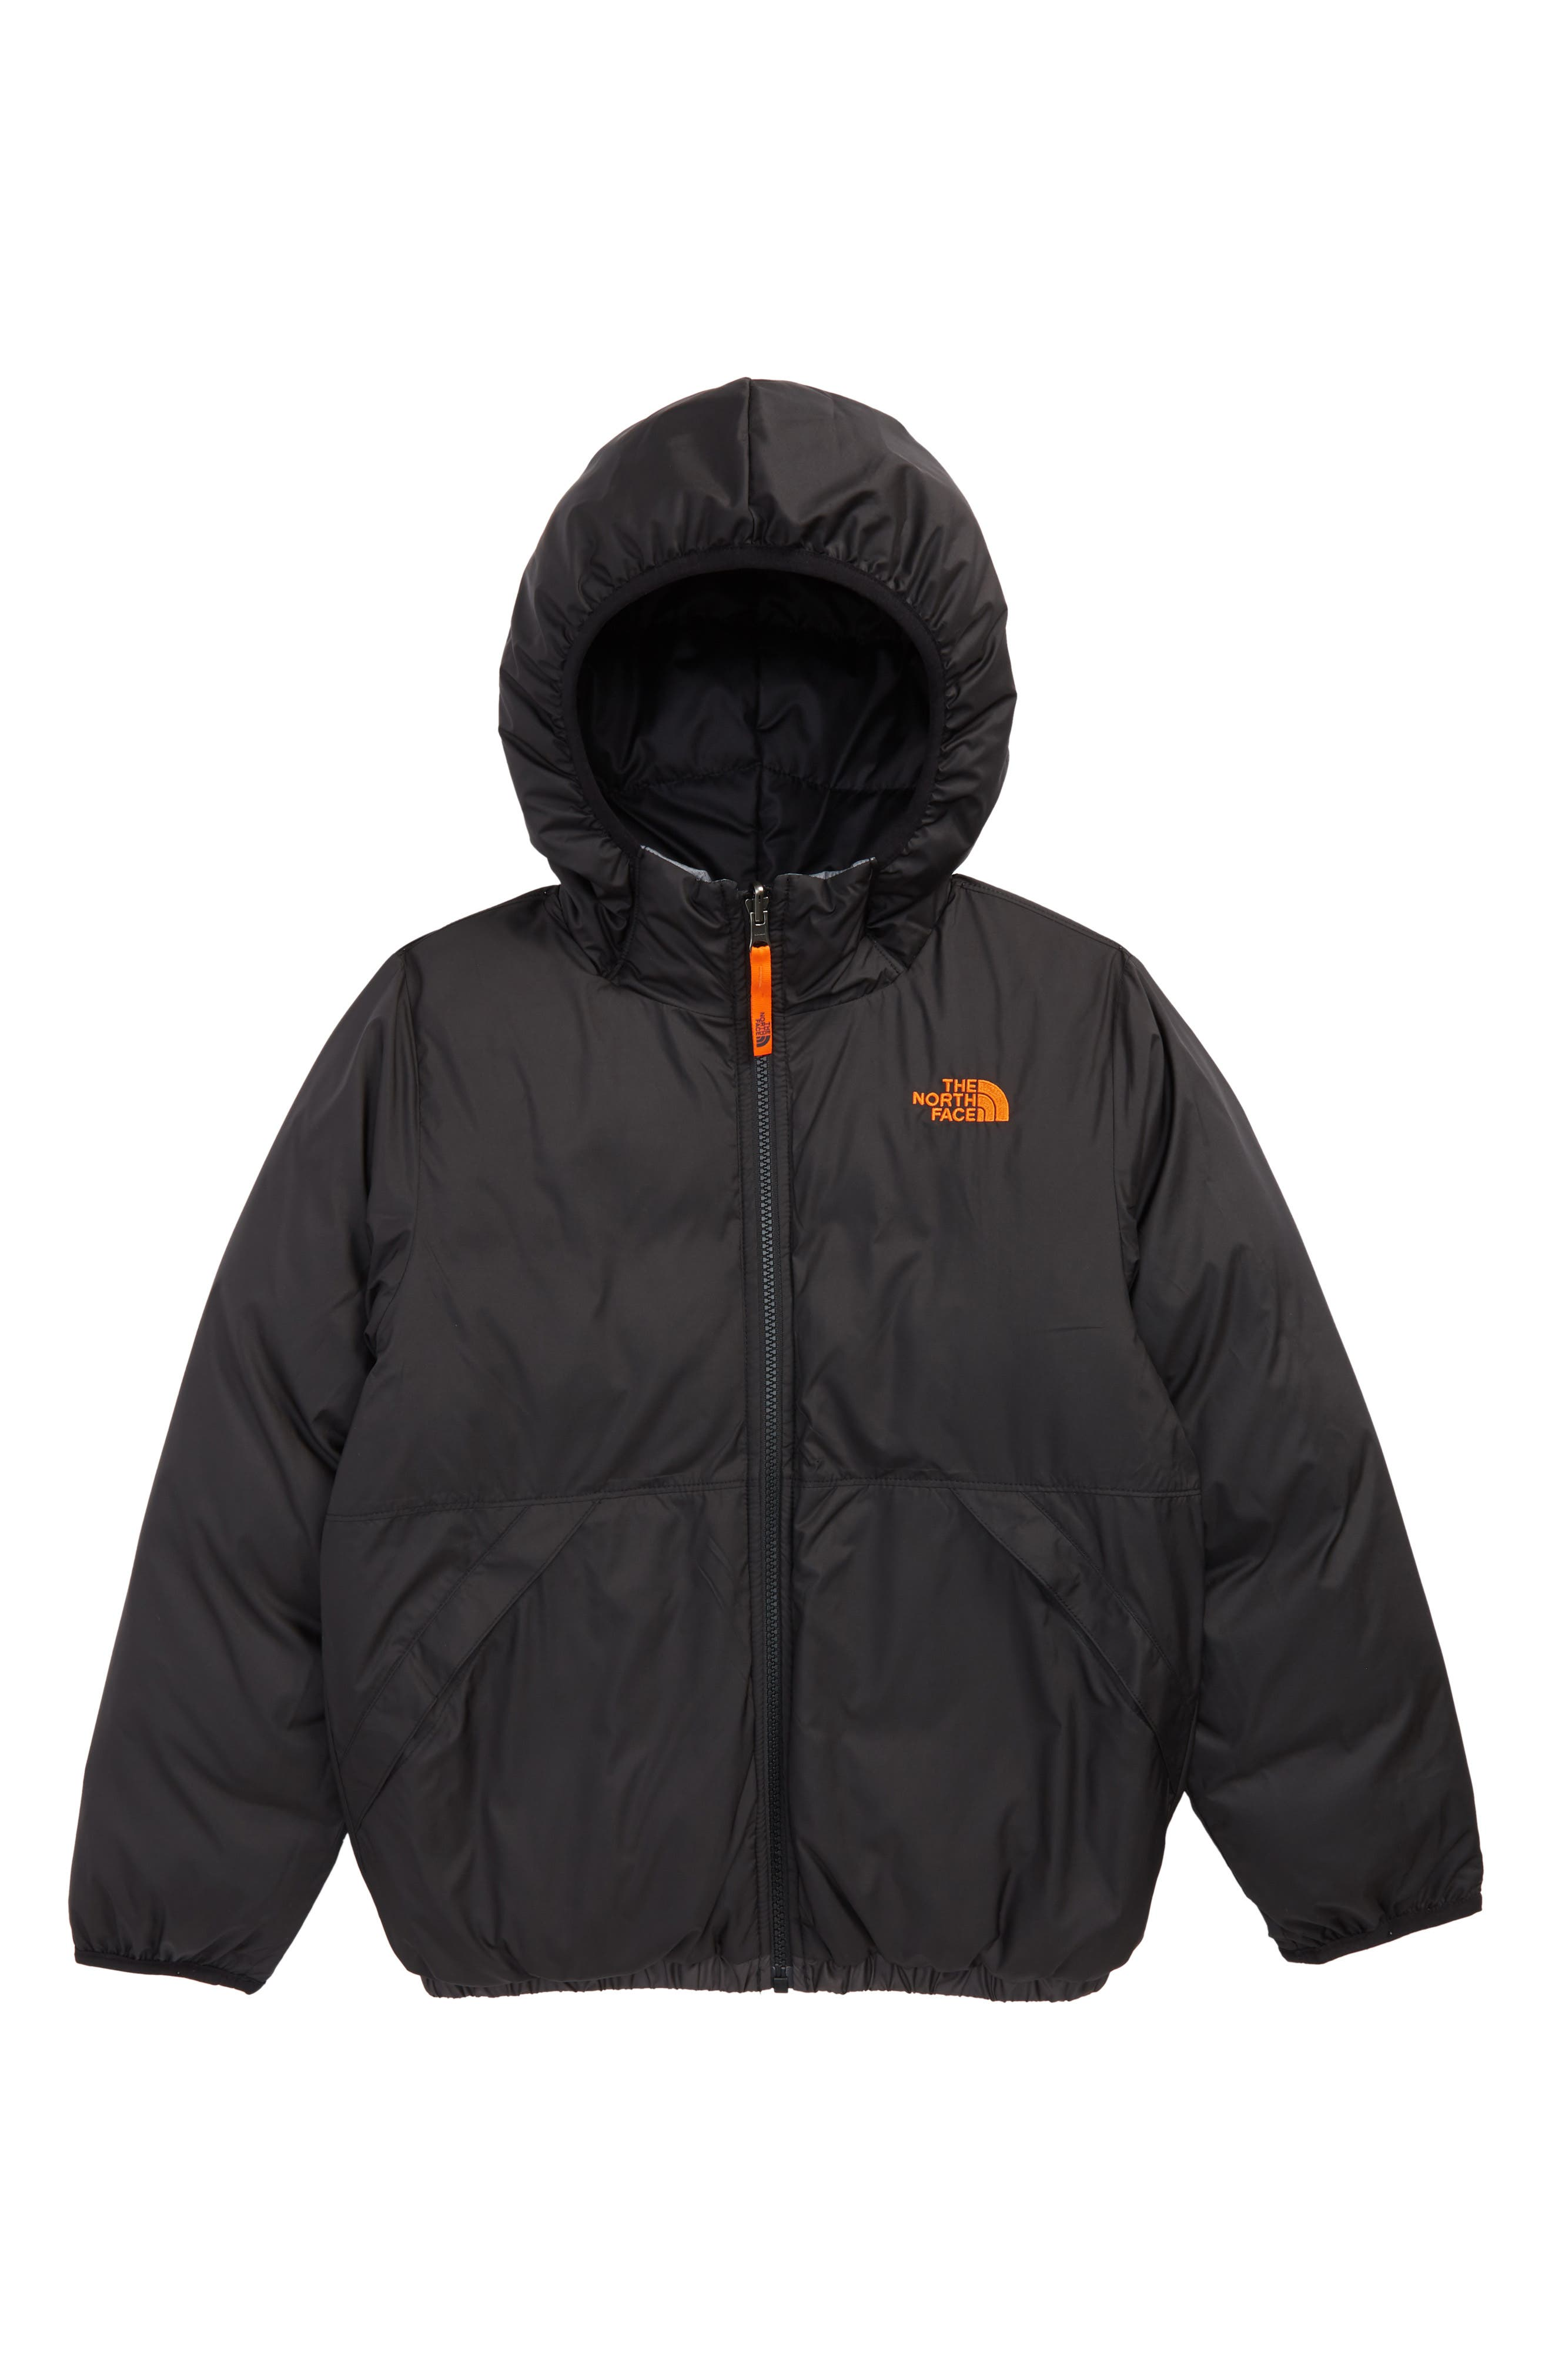 THE NORTH FACE,                             'Moondoggy' Water Repellent Reversible Down Jacket,                             Alternate thumbnail 2, color,                             BLACK/ GRAPHITE GREY